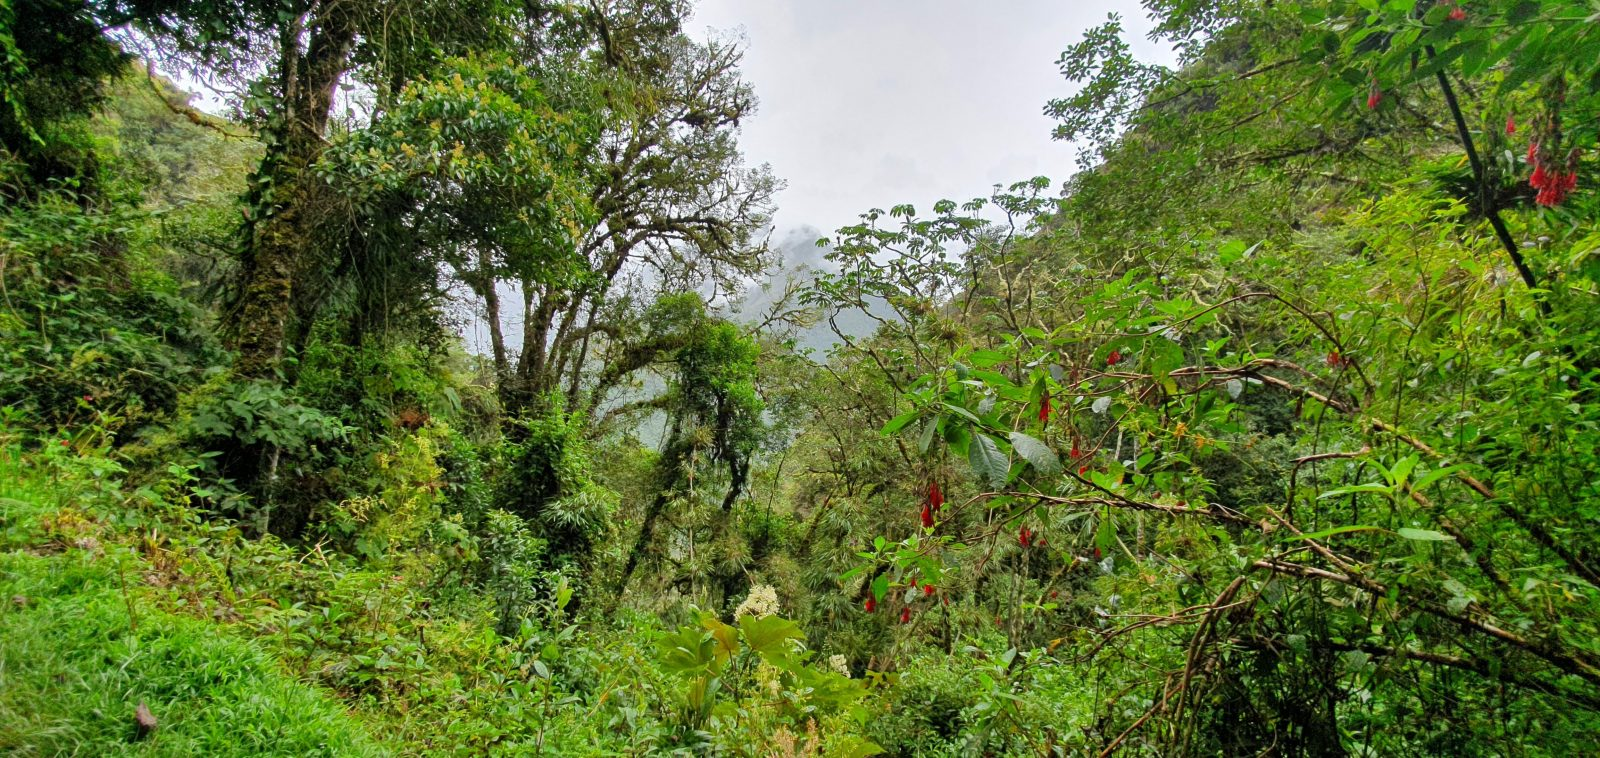 Photo of the nature you encounter when walking the Inca trail in Peru